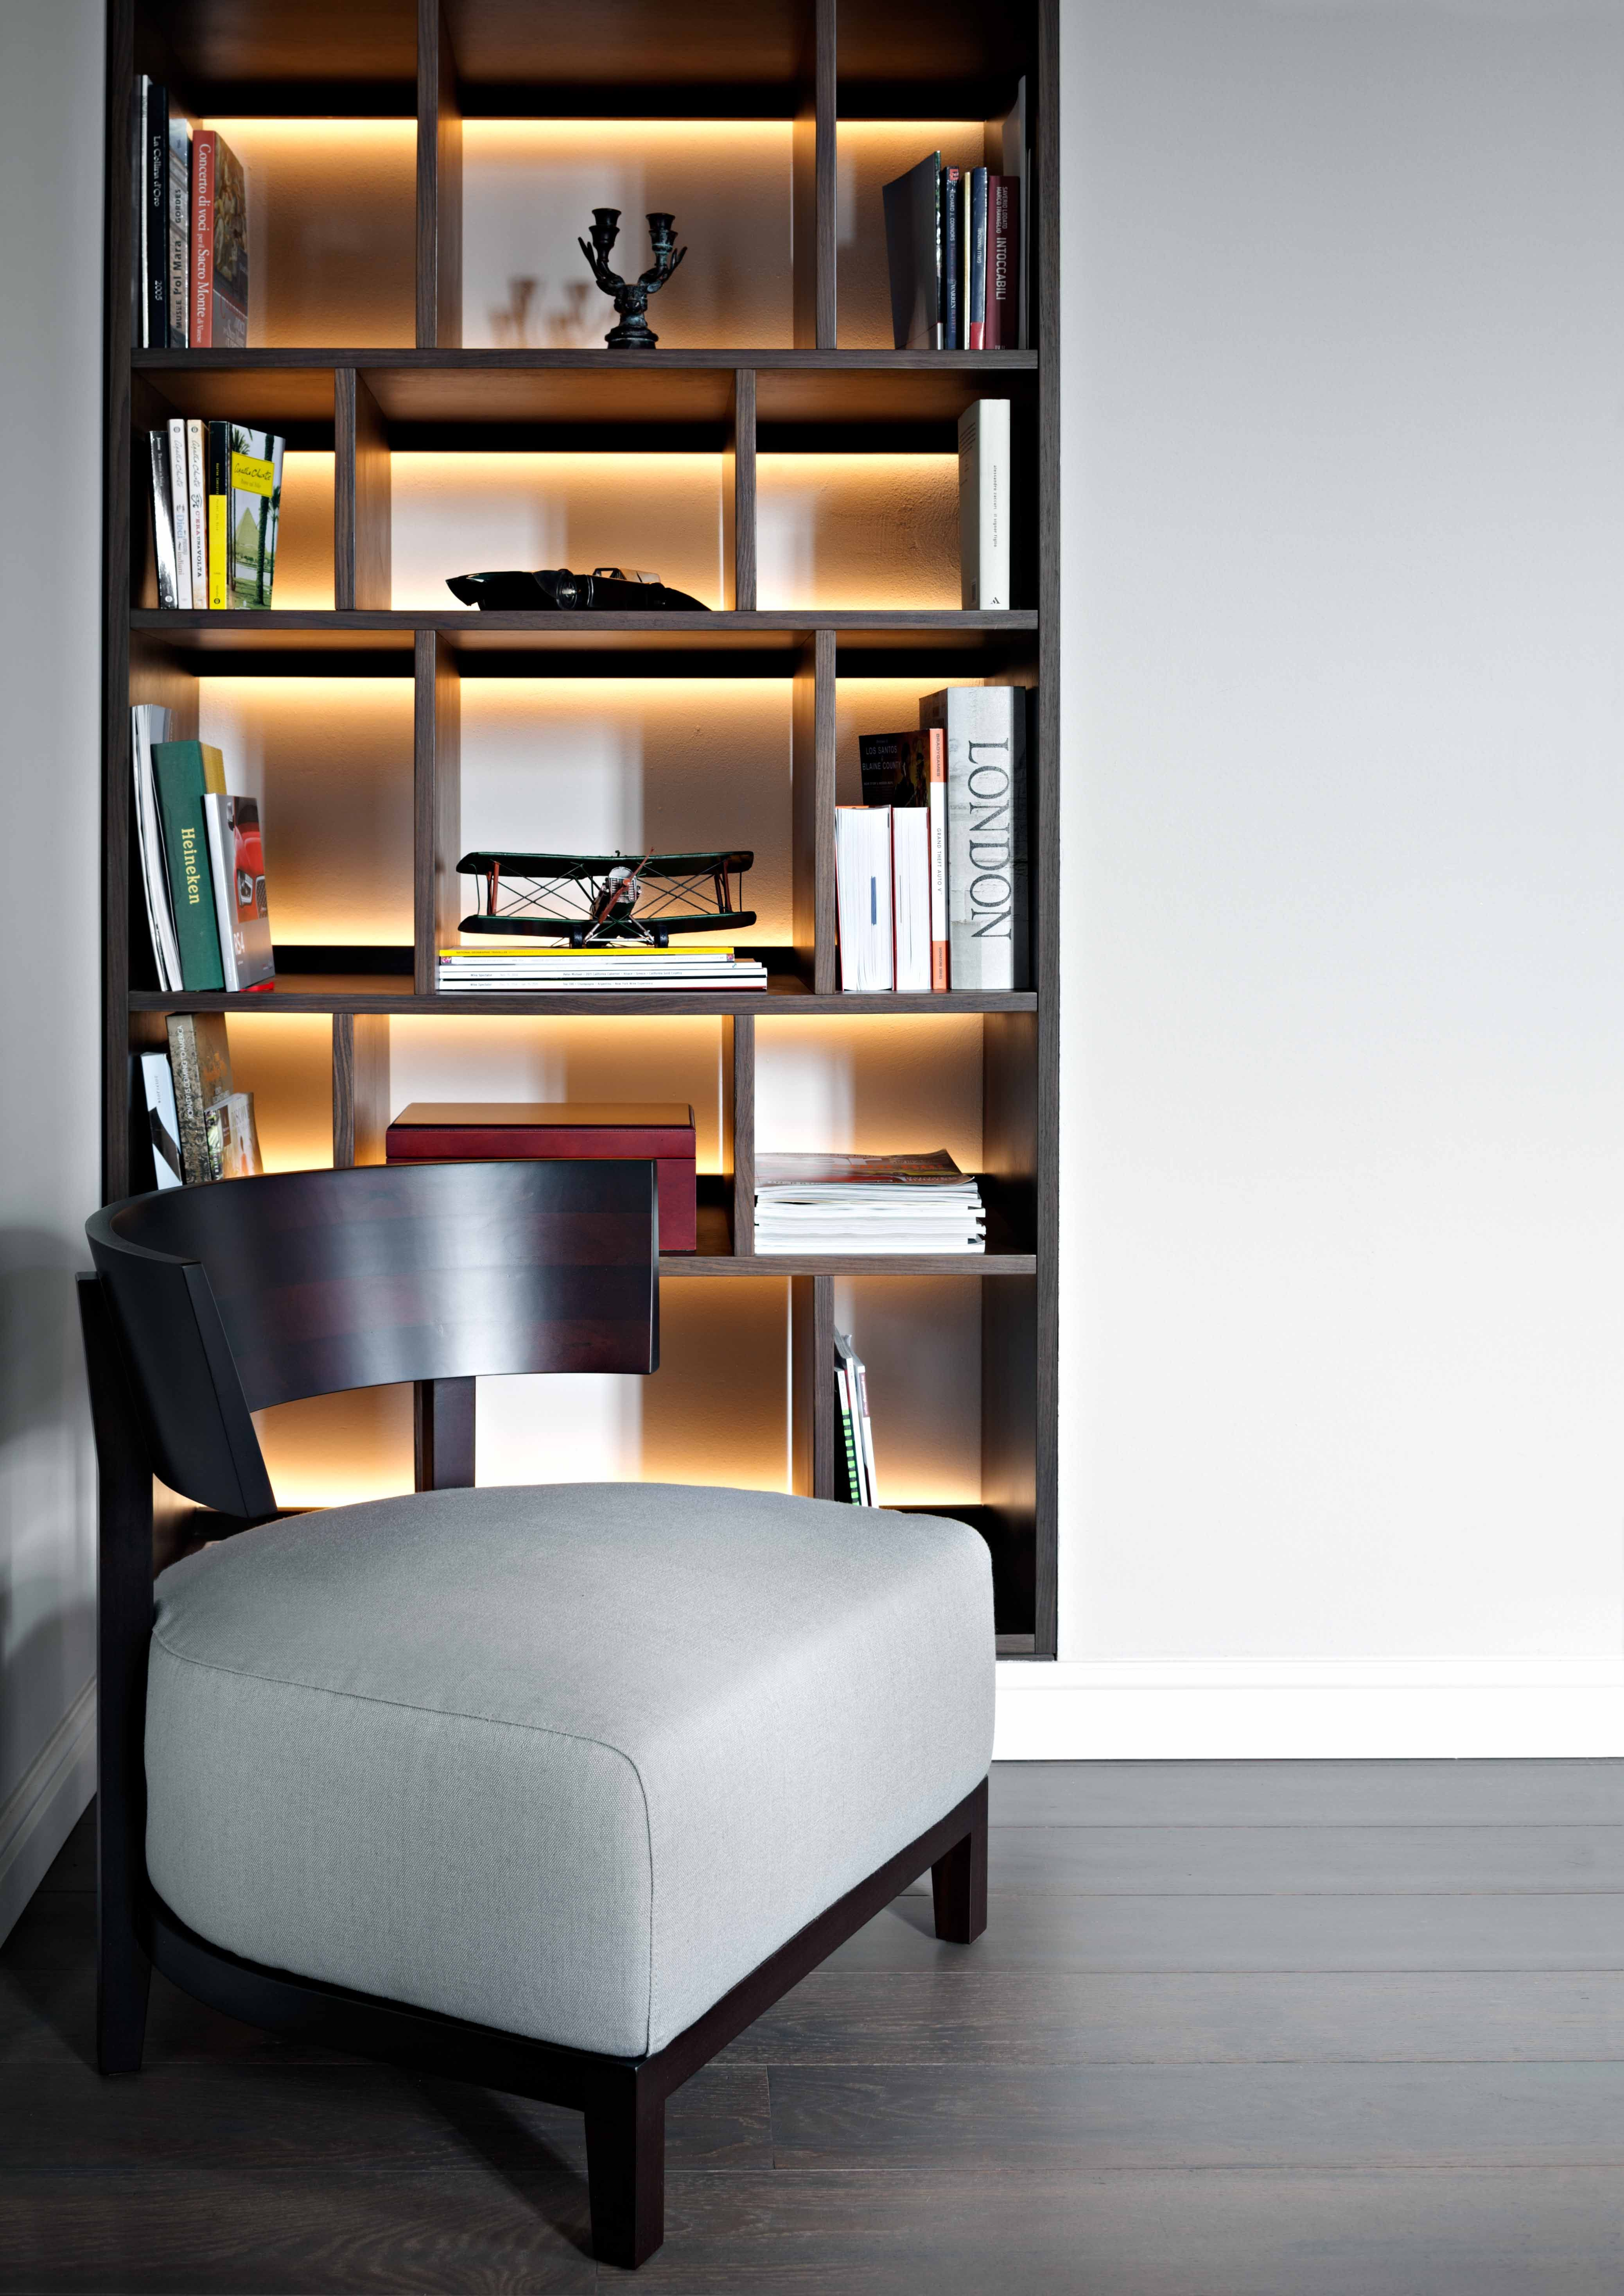 Think Of Shelves As A Window In The Room Or Even Like A Wall Light